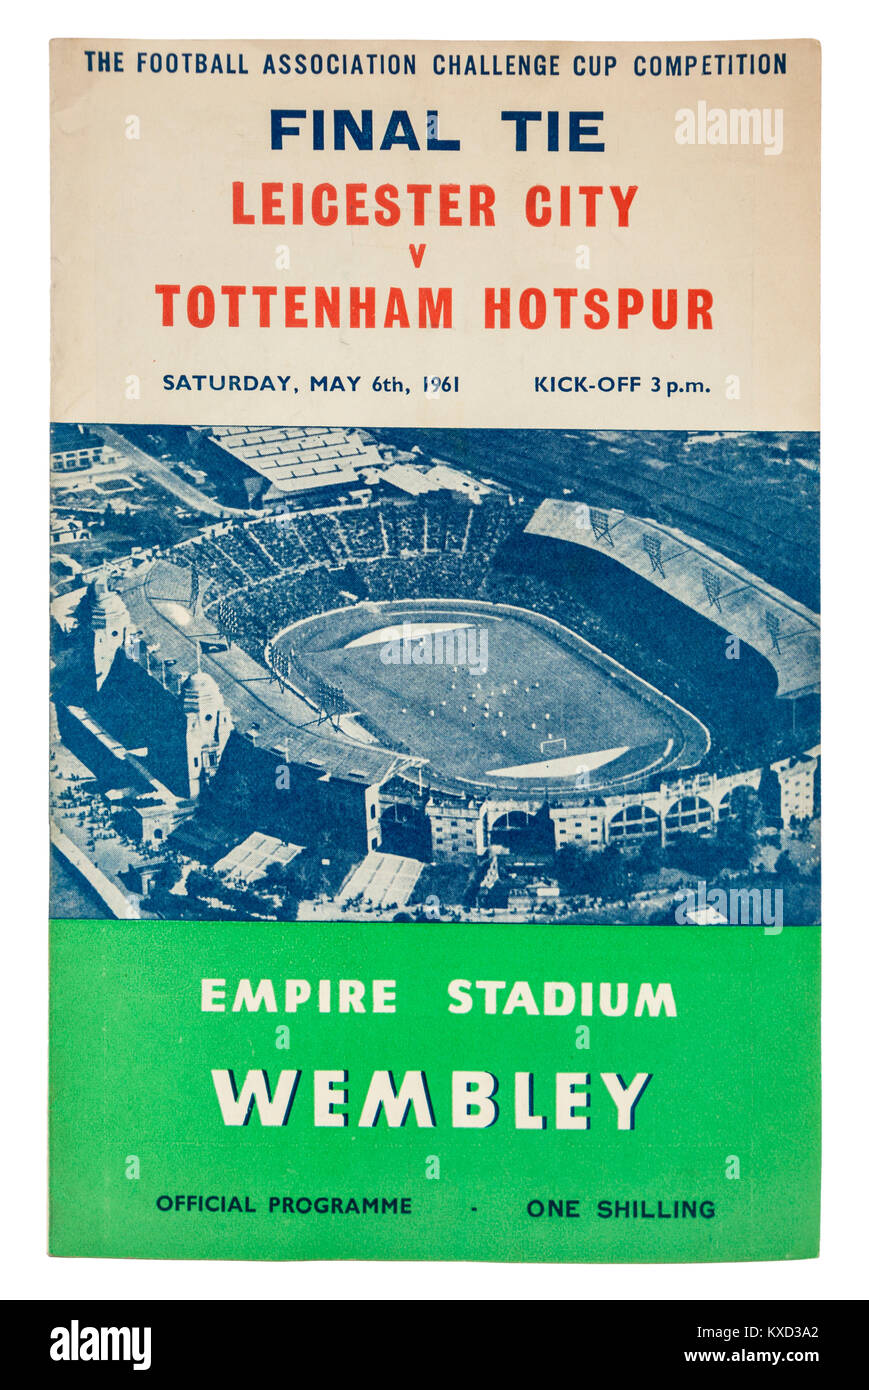 Official programme of the FA Cup Final Tie at Wembley between Leicester City and Tottenham Hotspur on Saturday 6th - Stock Image